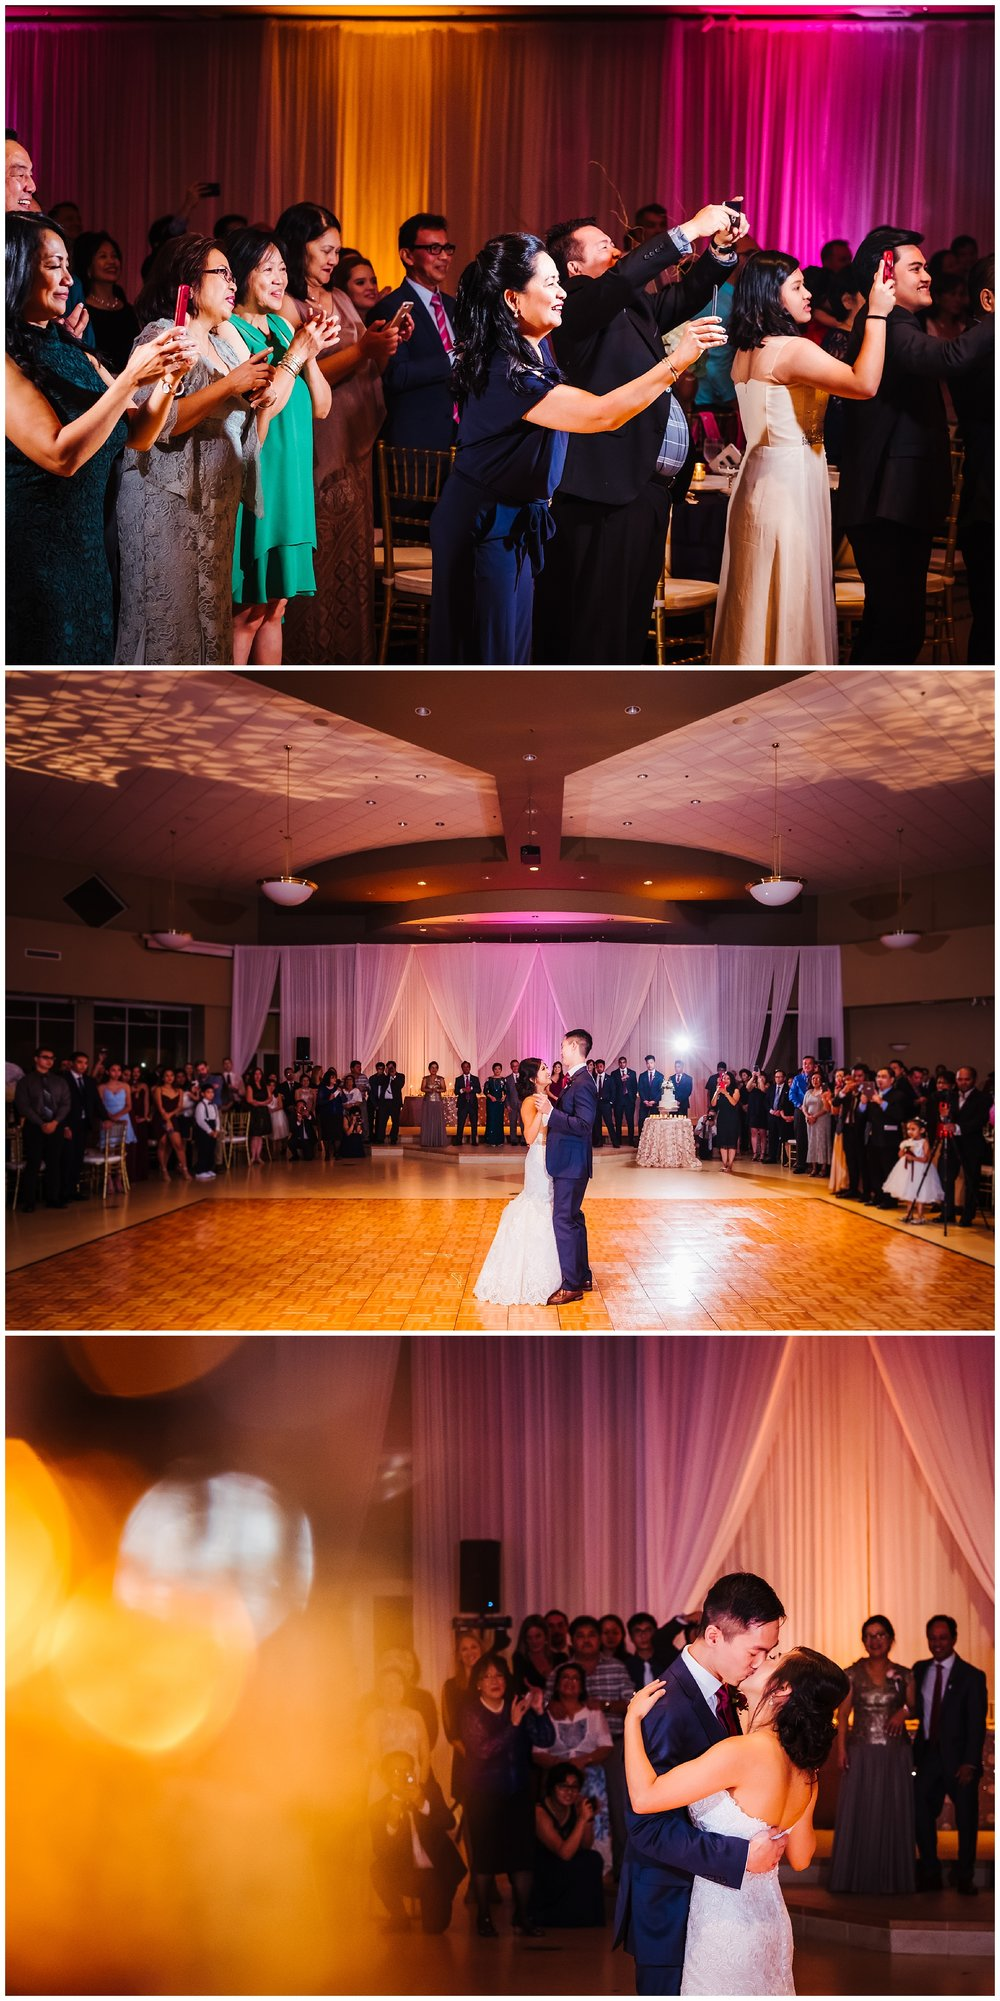 tampa-wedding-photographer-philipino-colorful-woods-ballroom-church-mass-confetti-fuscia_0067.jpg